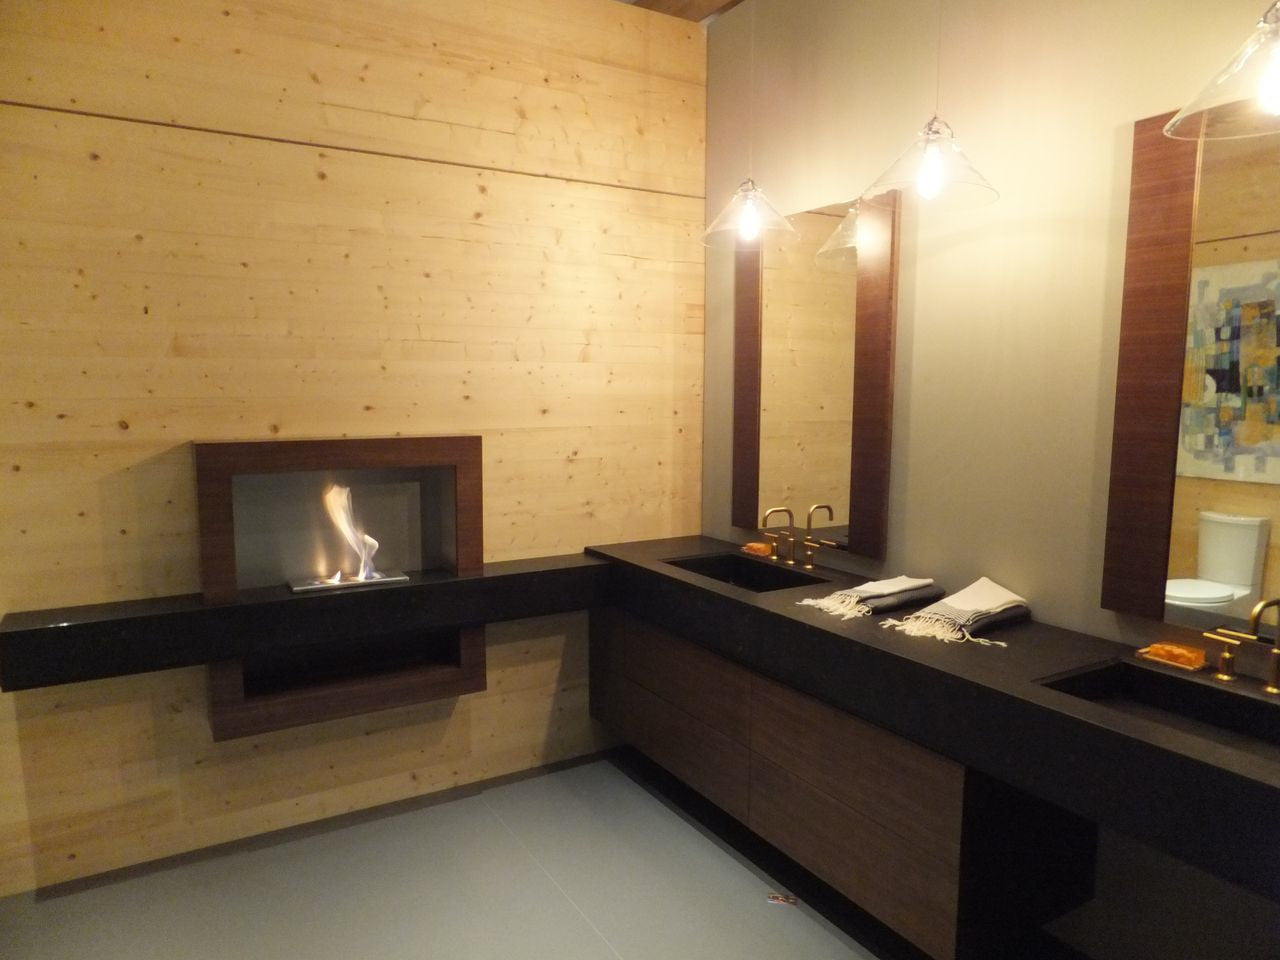 Ethanol fireplace built into a shelf - How To Build Your Own Bio-Ethanol FIreplace Using Ethanol Burner